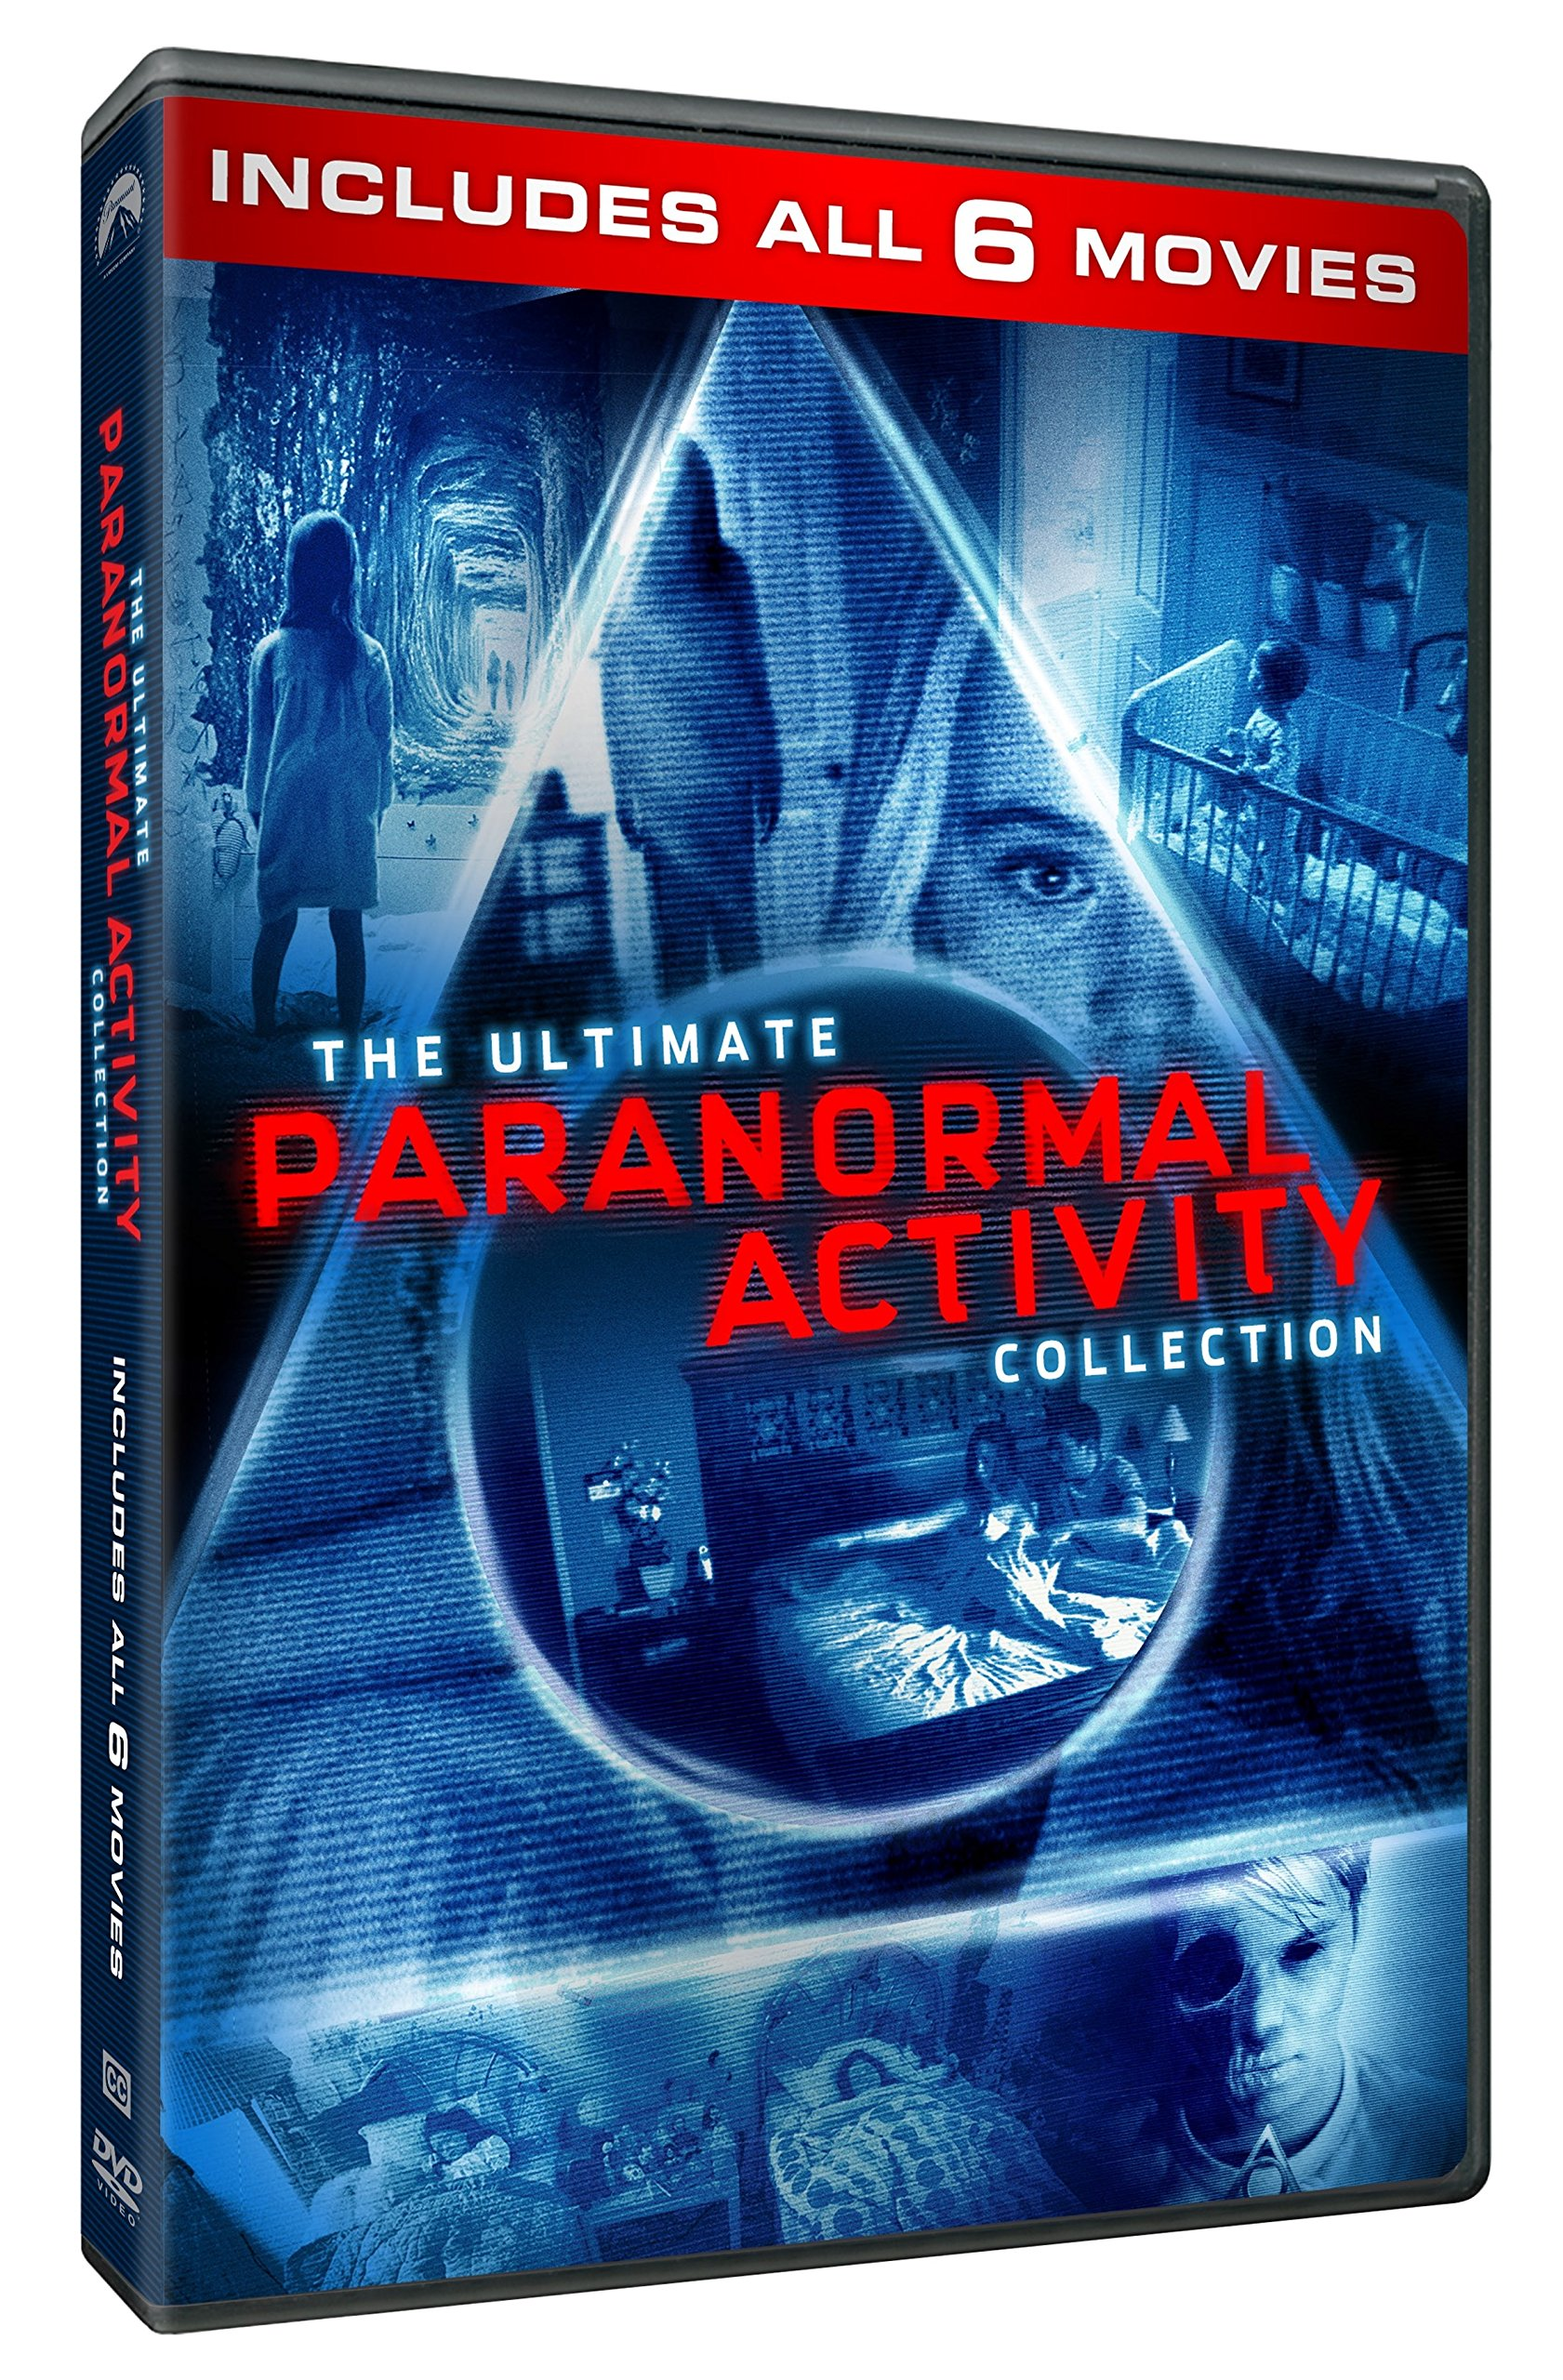 DVD : Paranormal Activity 6-movie Collection (Dolby, AC-3, Widescreen, 6 Disc)